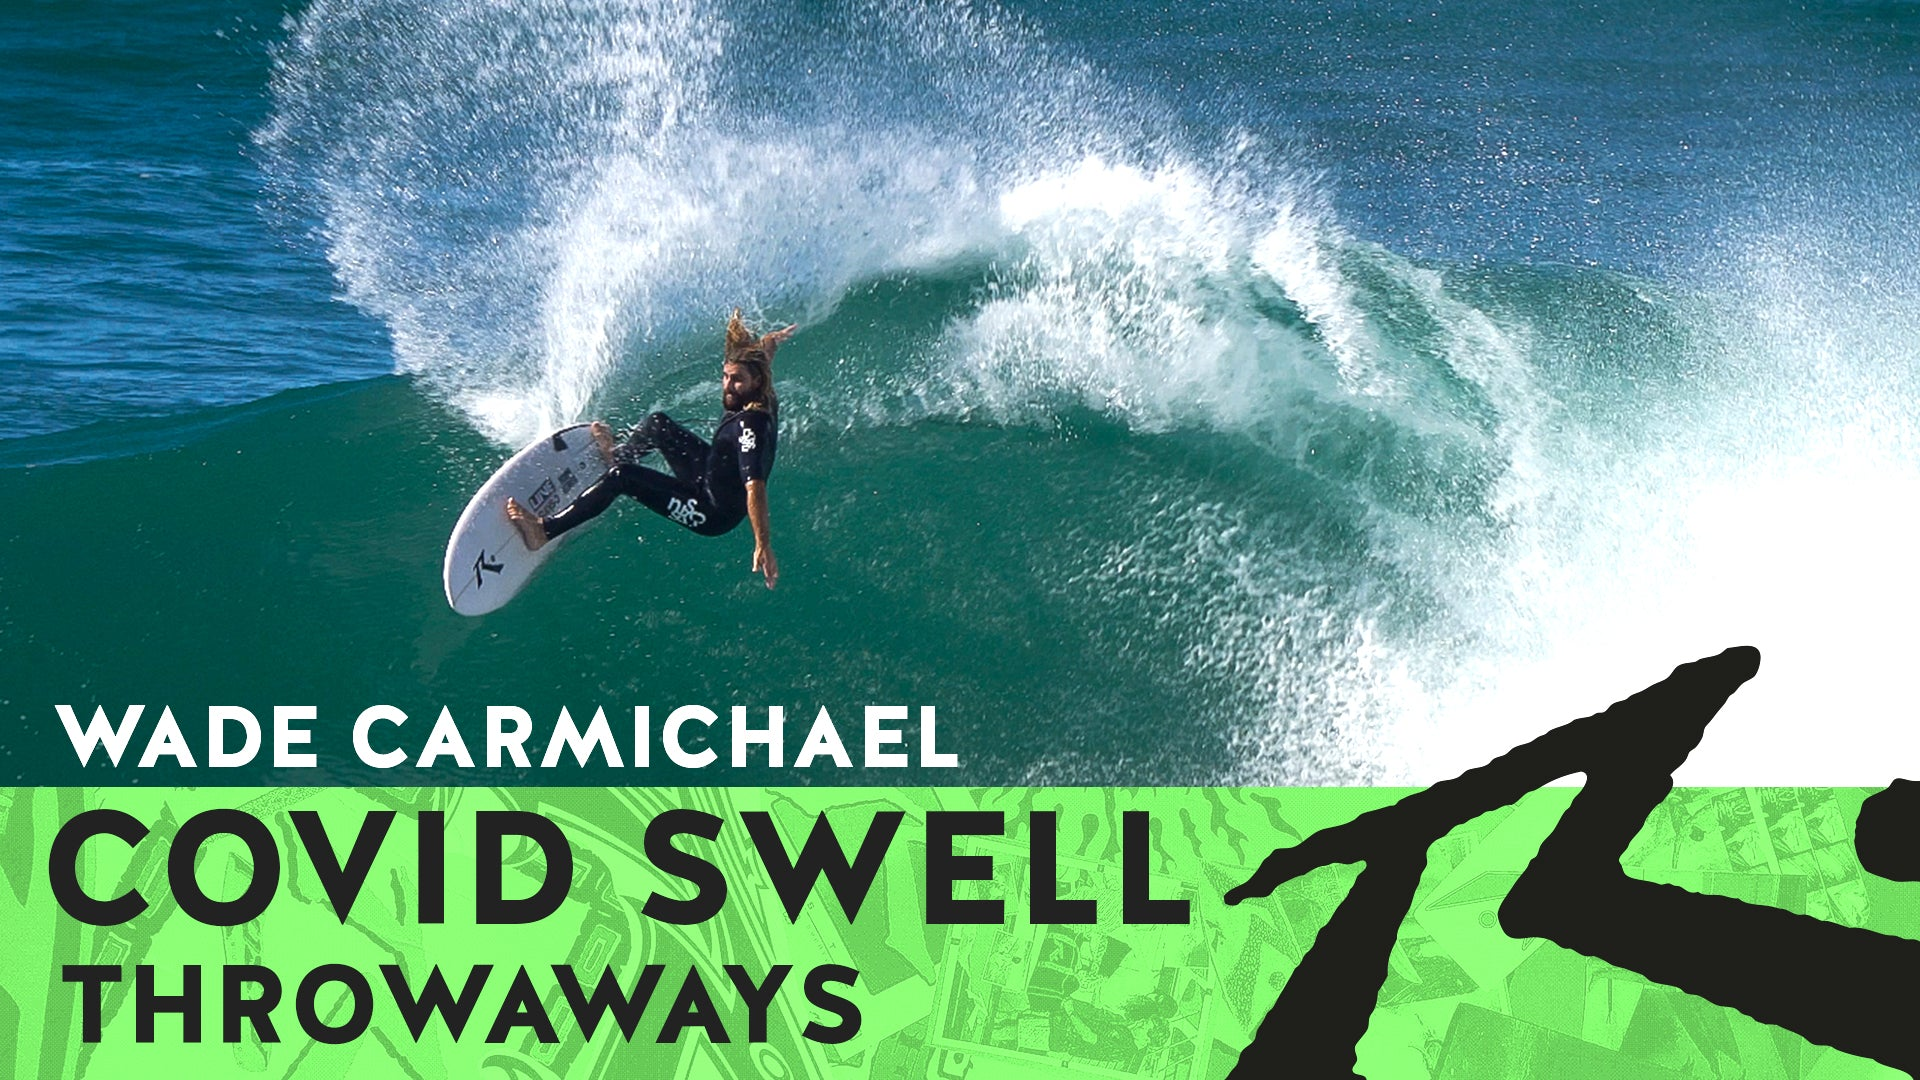 Wade Carmichael COVID Swells Throwaways